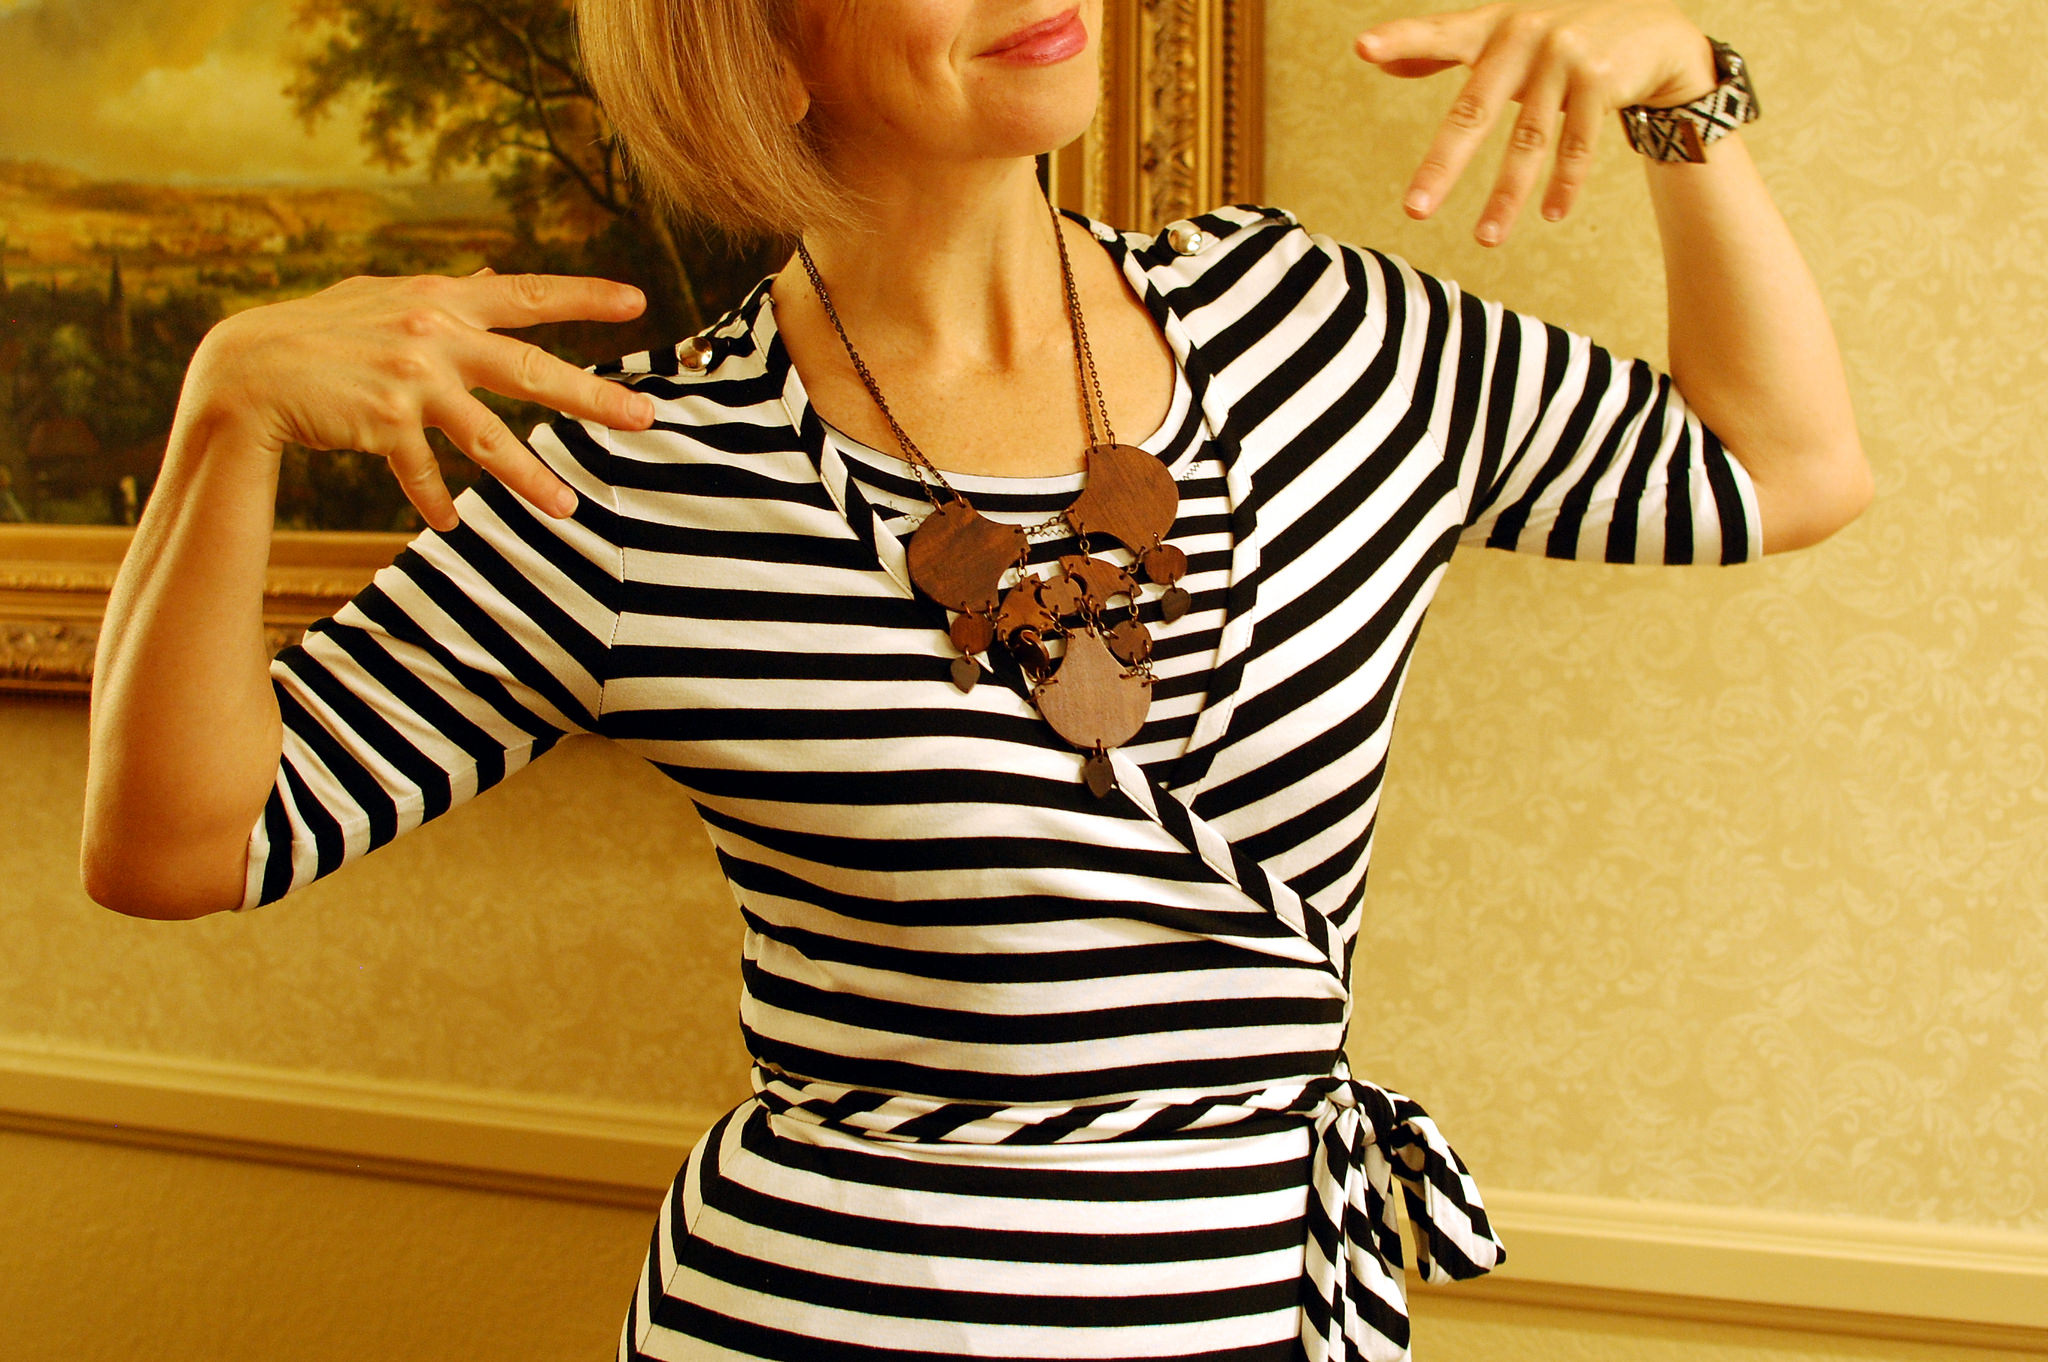 pattern mix black white brown wrap dress daily outfit blog ootd whatiwore2day